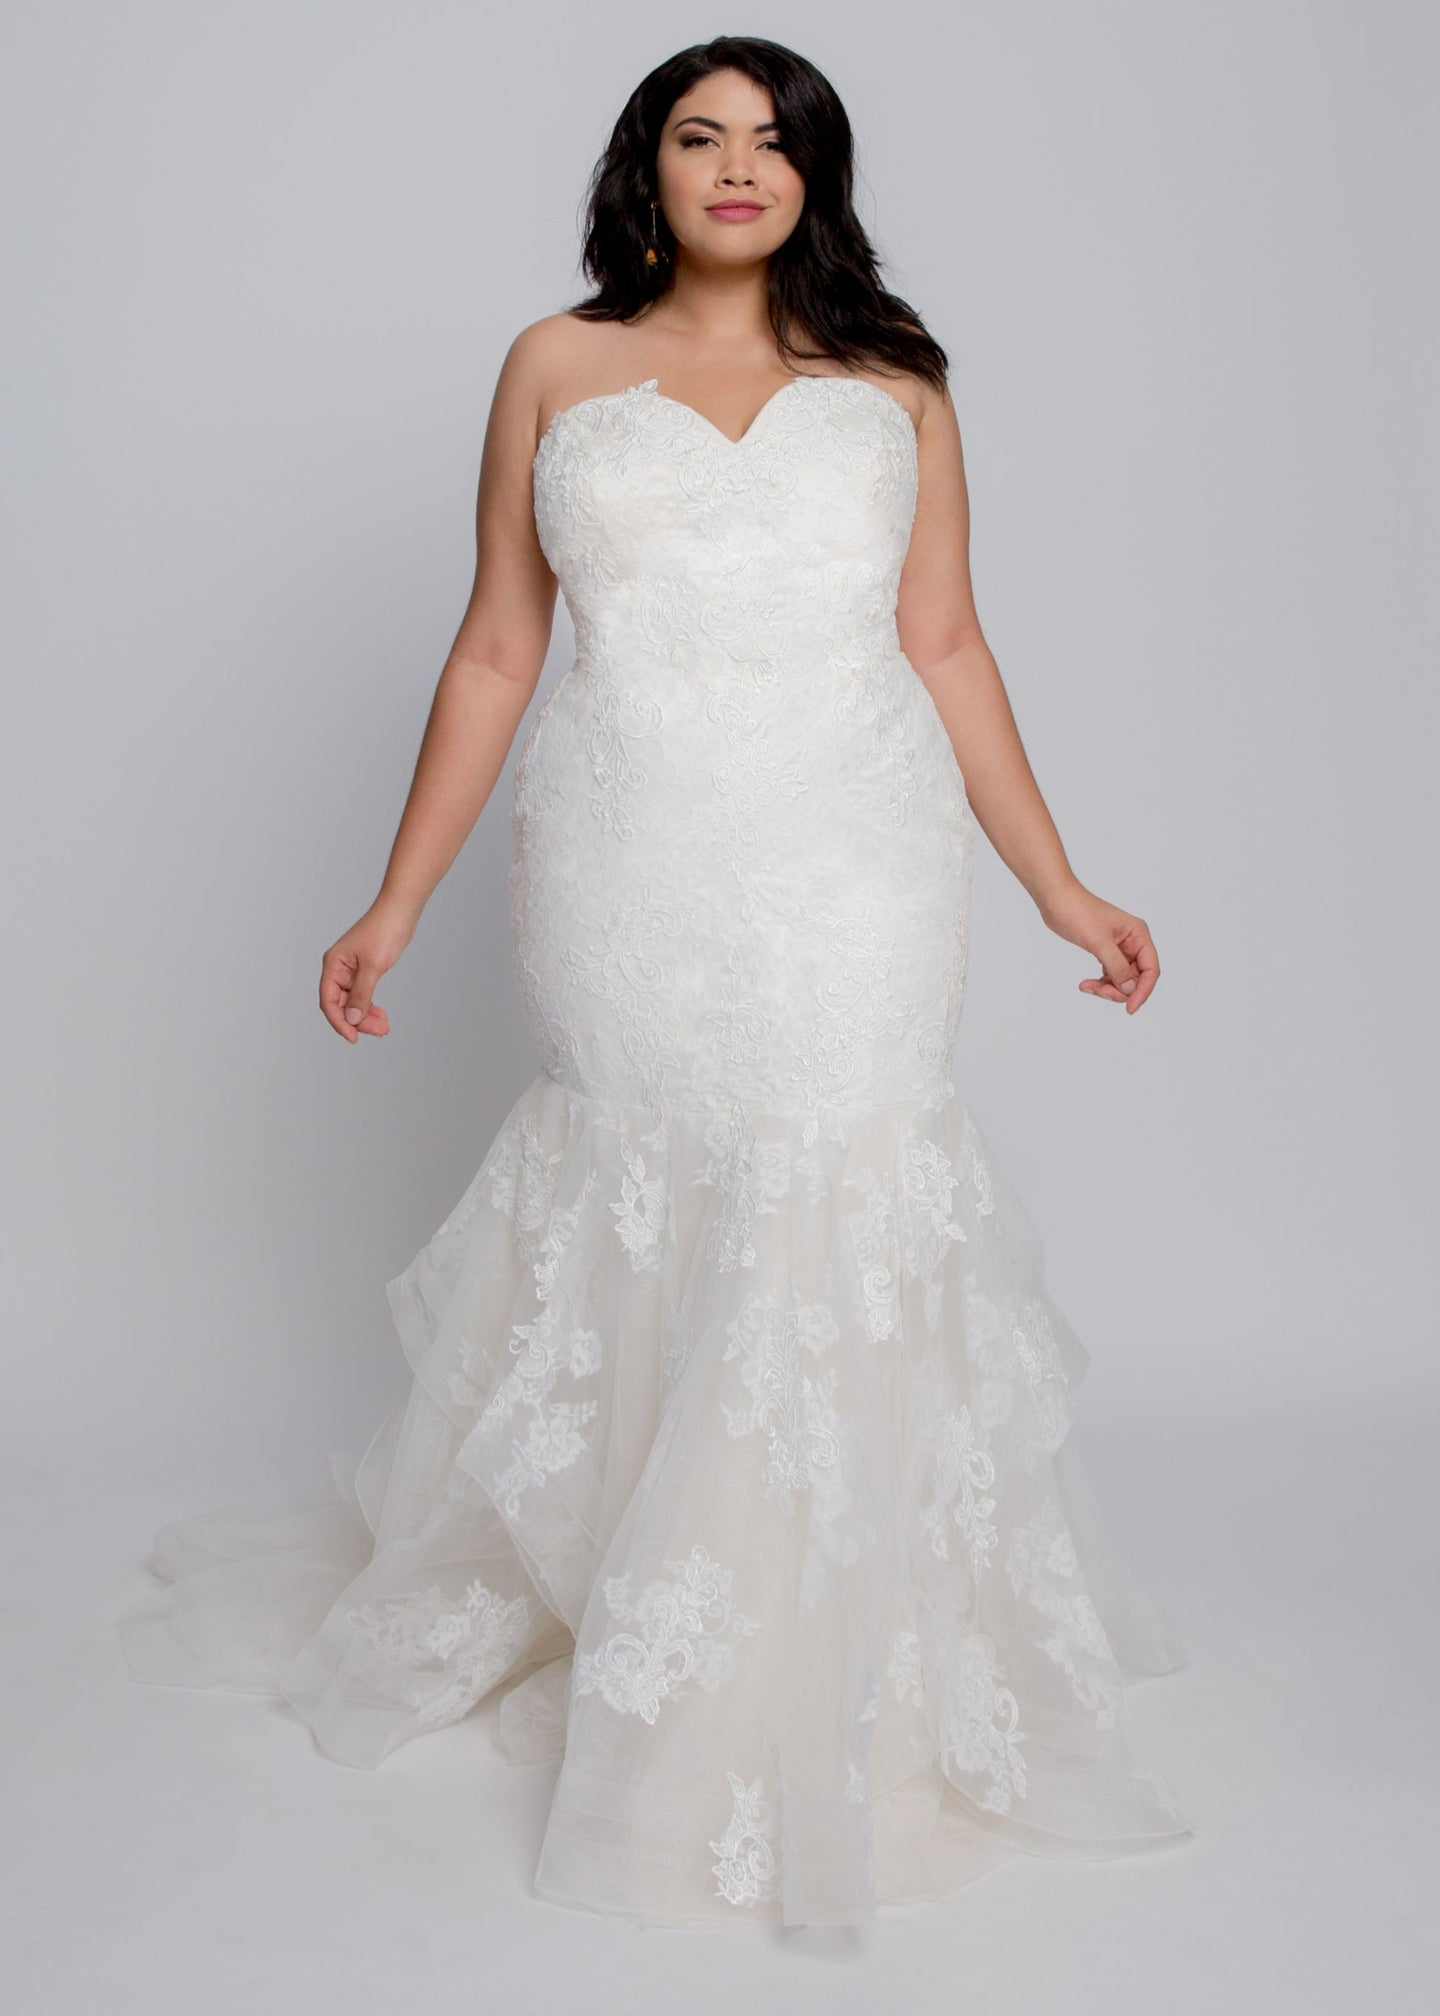 Gorgeous bridal gowns for all body shapes: plus size, curvy, or petite brides. Try on our wedding dresses at home. Size 0-30. Comfortable. Convenient. Fun. Lace or satin. Mermaid or A-line. The romantic Elena Gown will flatter your curves with its sweetheart lace neckline and figure hugging mermaid skirt. Layers of ivory lace over champagne tulle feature a hint of illusion and romance. Glide down the aisle with the layers of horsehair lined, and appliqued tulle with a beautiful chapel lace train.